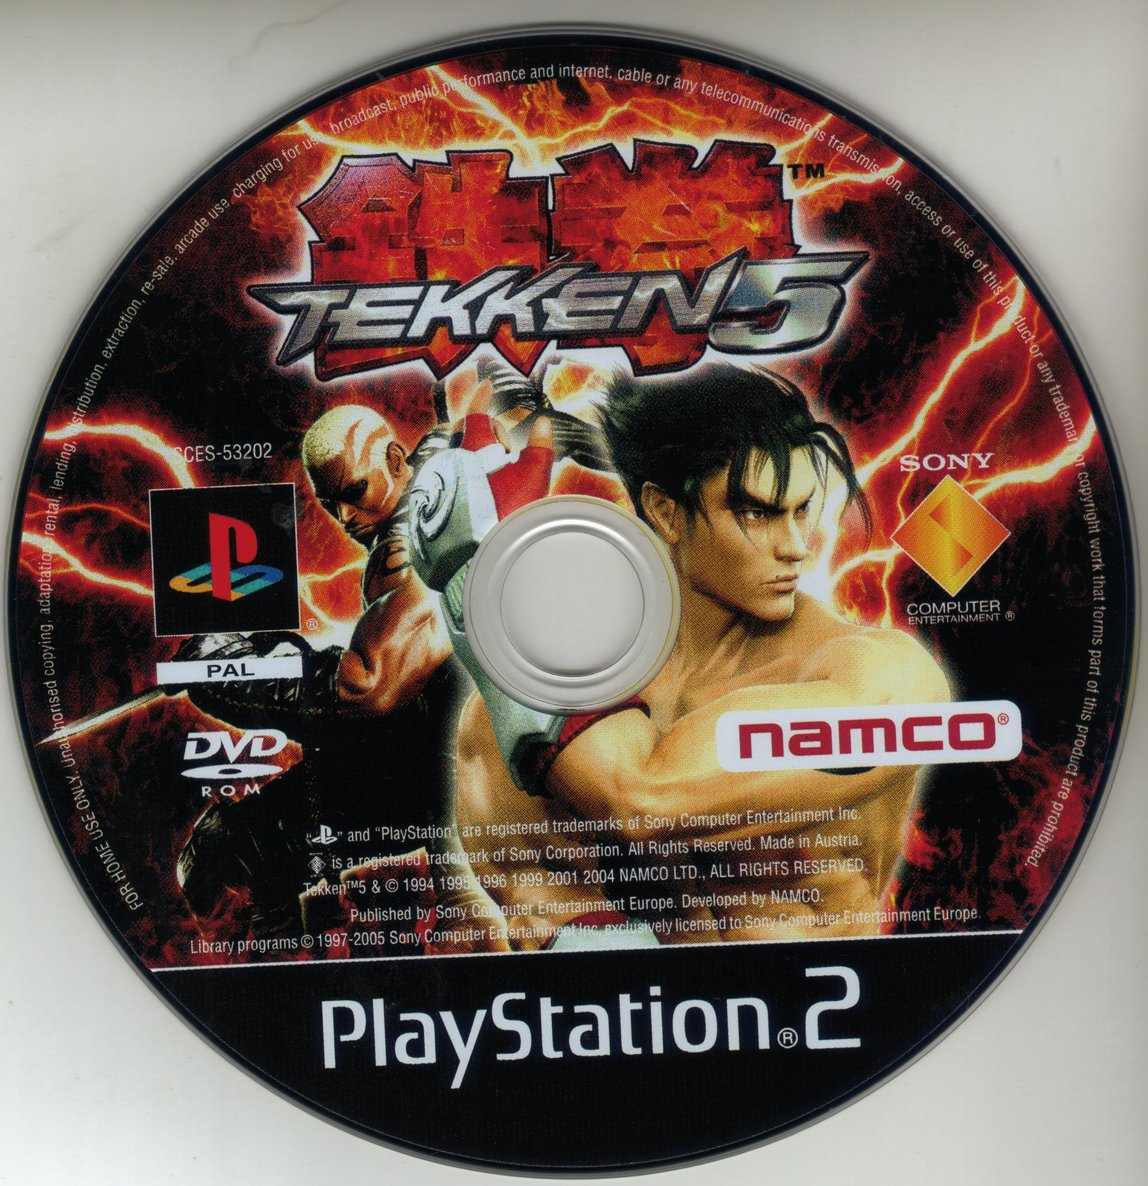 Tekken 5 Ps2 Cdd Playstation 2 Covers Cover Century Over